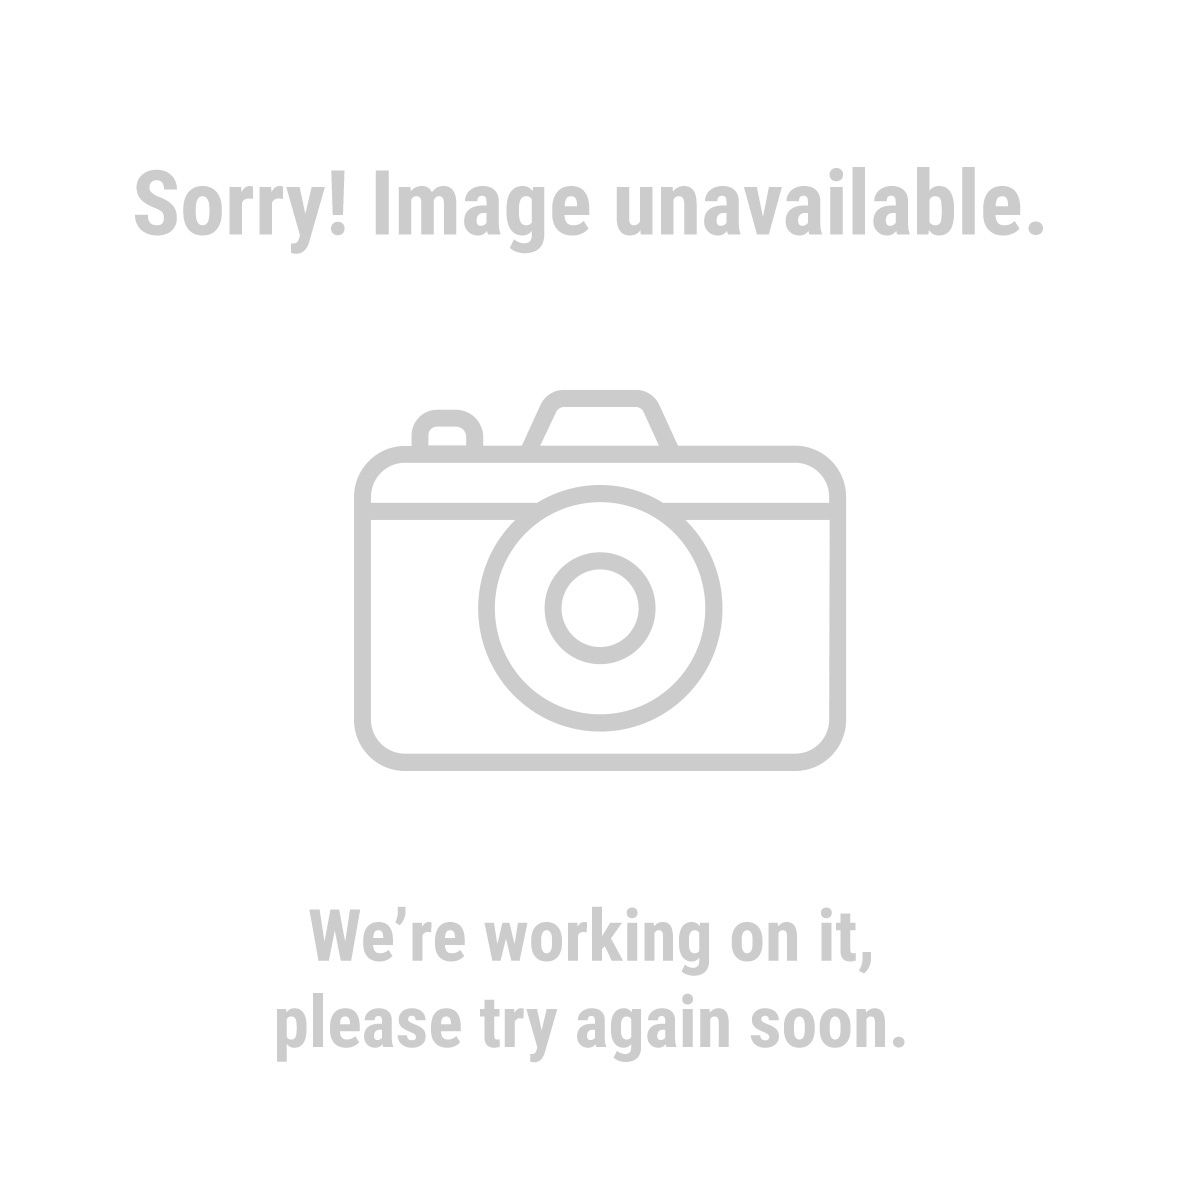 HFT 69190 19 ft. x 39 ft. 4 in. All Purpose Weather Resistant Tarp